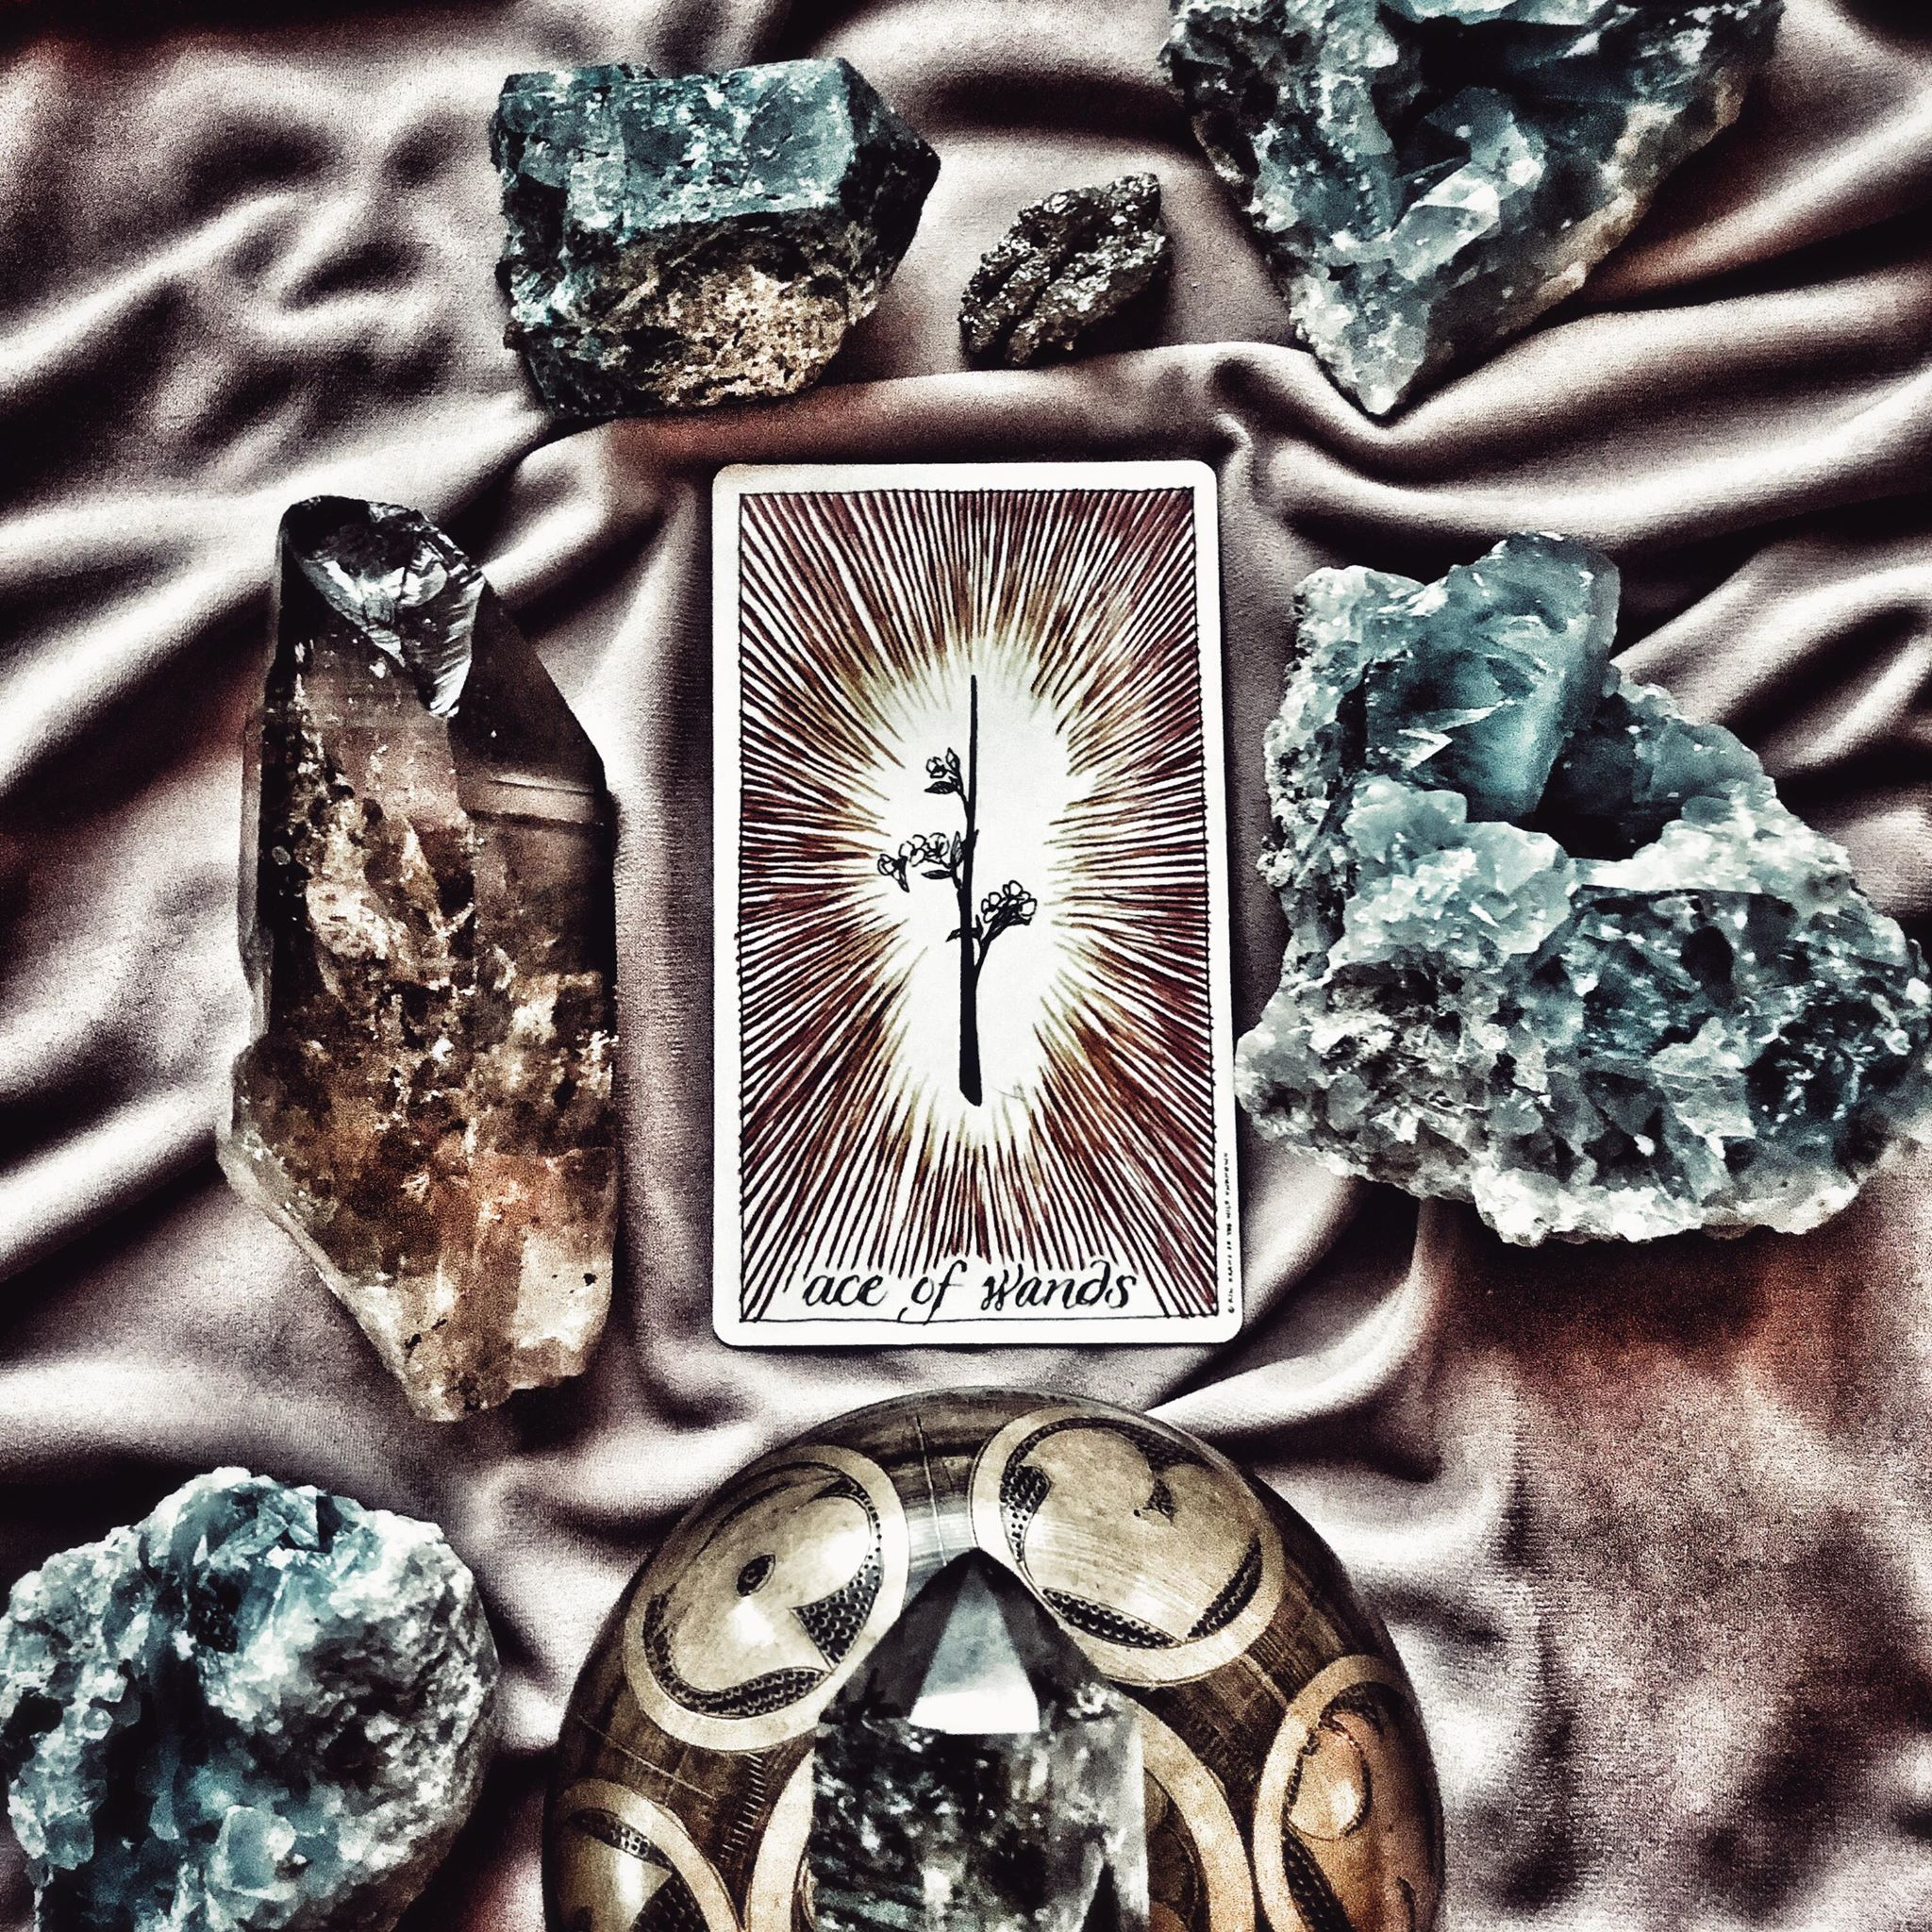 Ace of Wands, The Wild Unknown Tarot